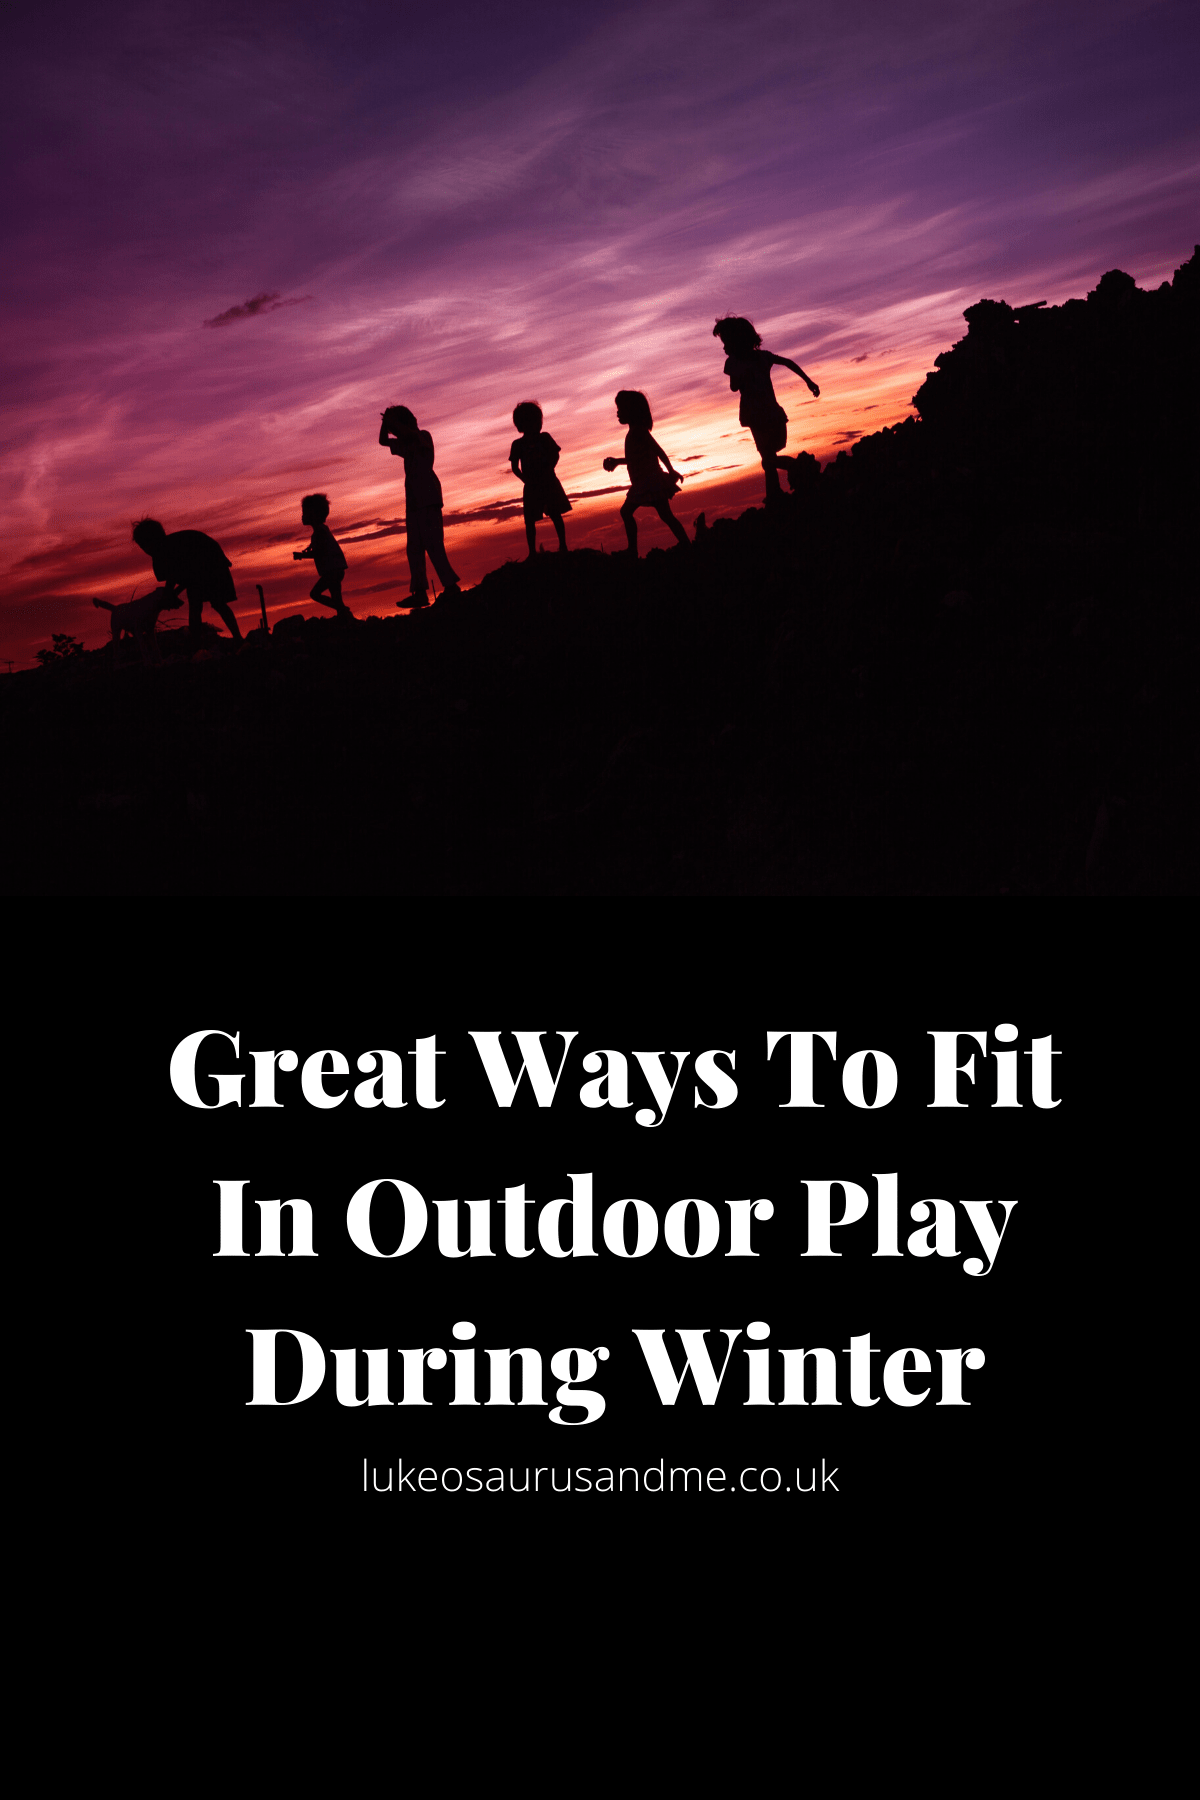 """Children and their dog running down a hill silhouetted against the sunset. The words """"Great Ways To Fit In Outdoor Play"""" are underneath the image in white text with a black background."""